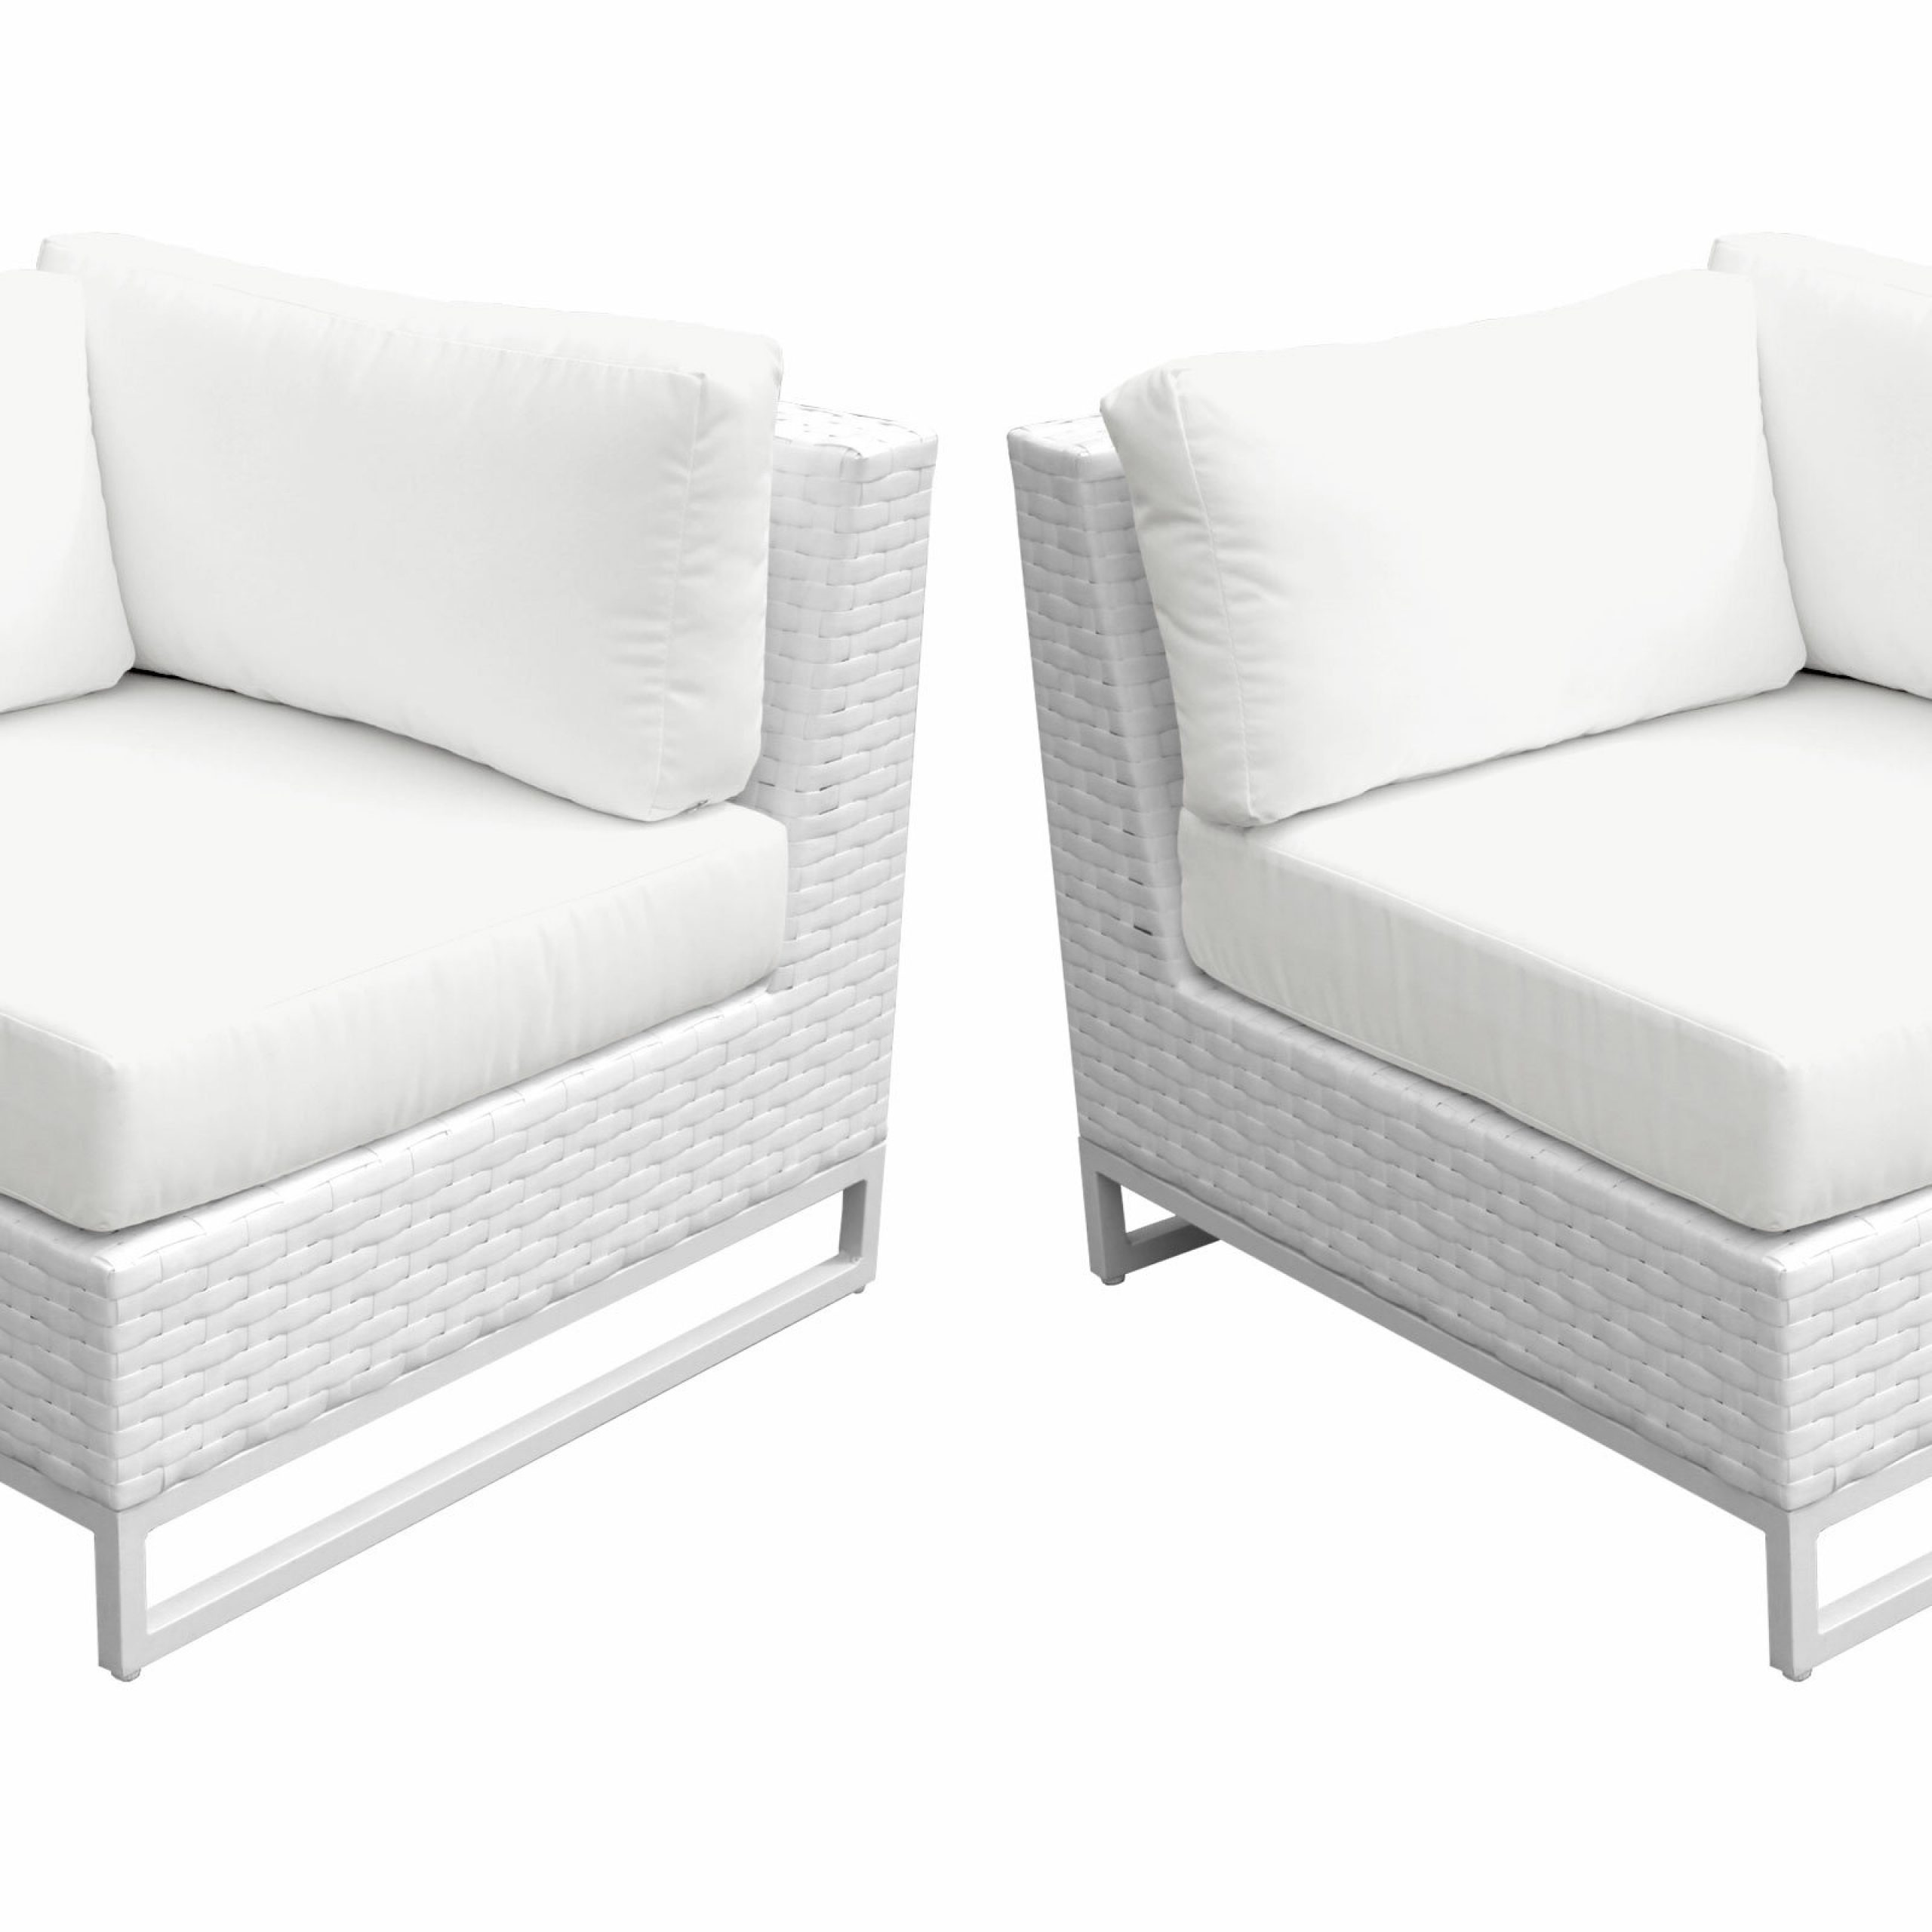 Menifee Patio Sofas With Cushions Within 2019 Menifee Patio Chair With Cushions (View 2 of 25)